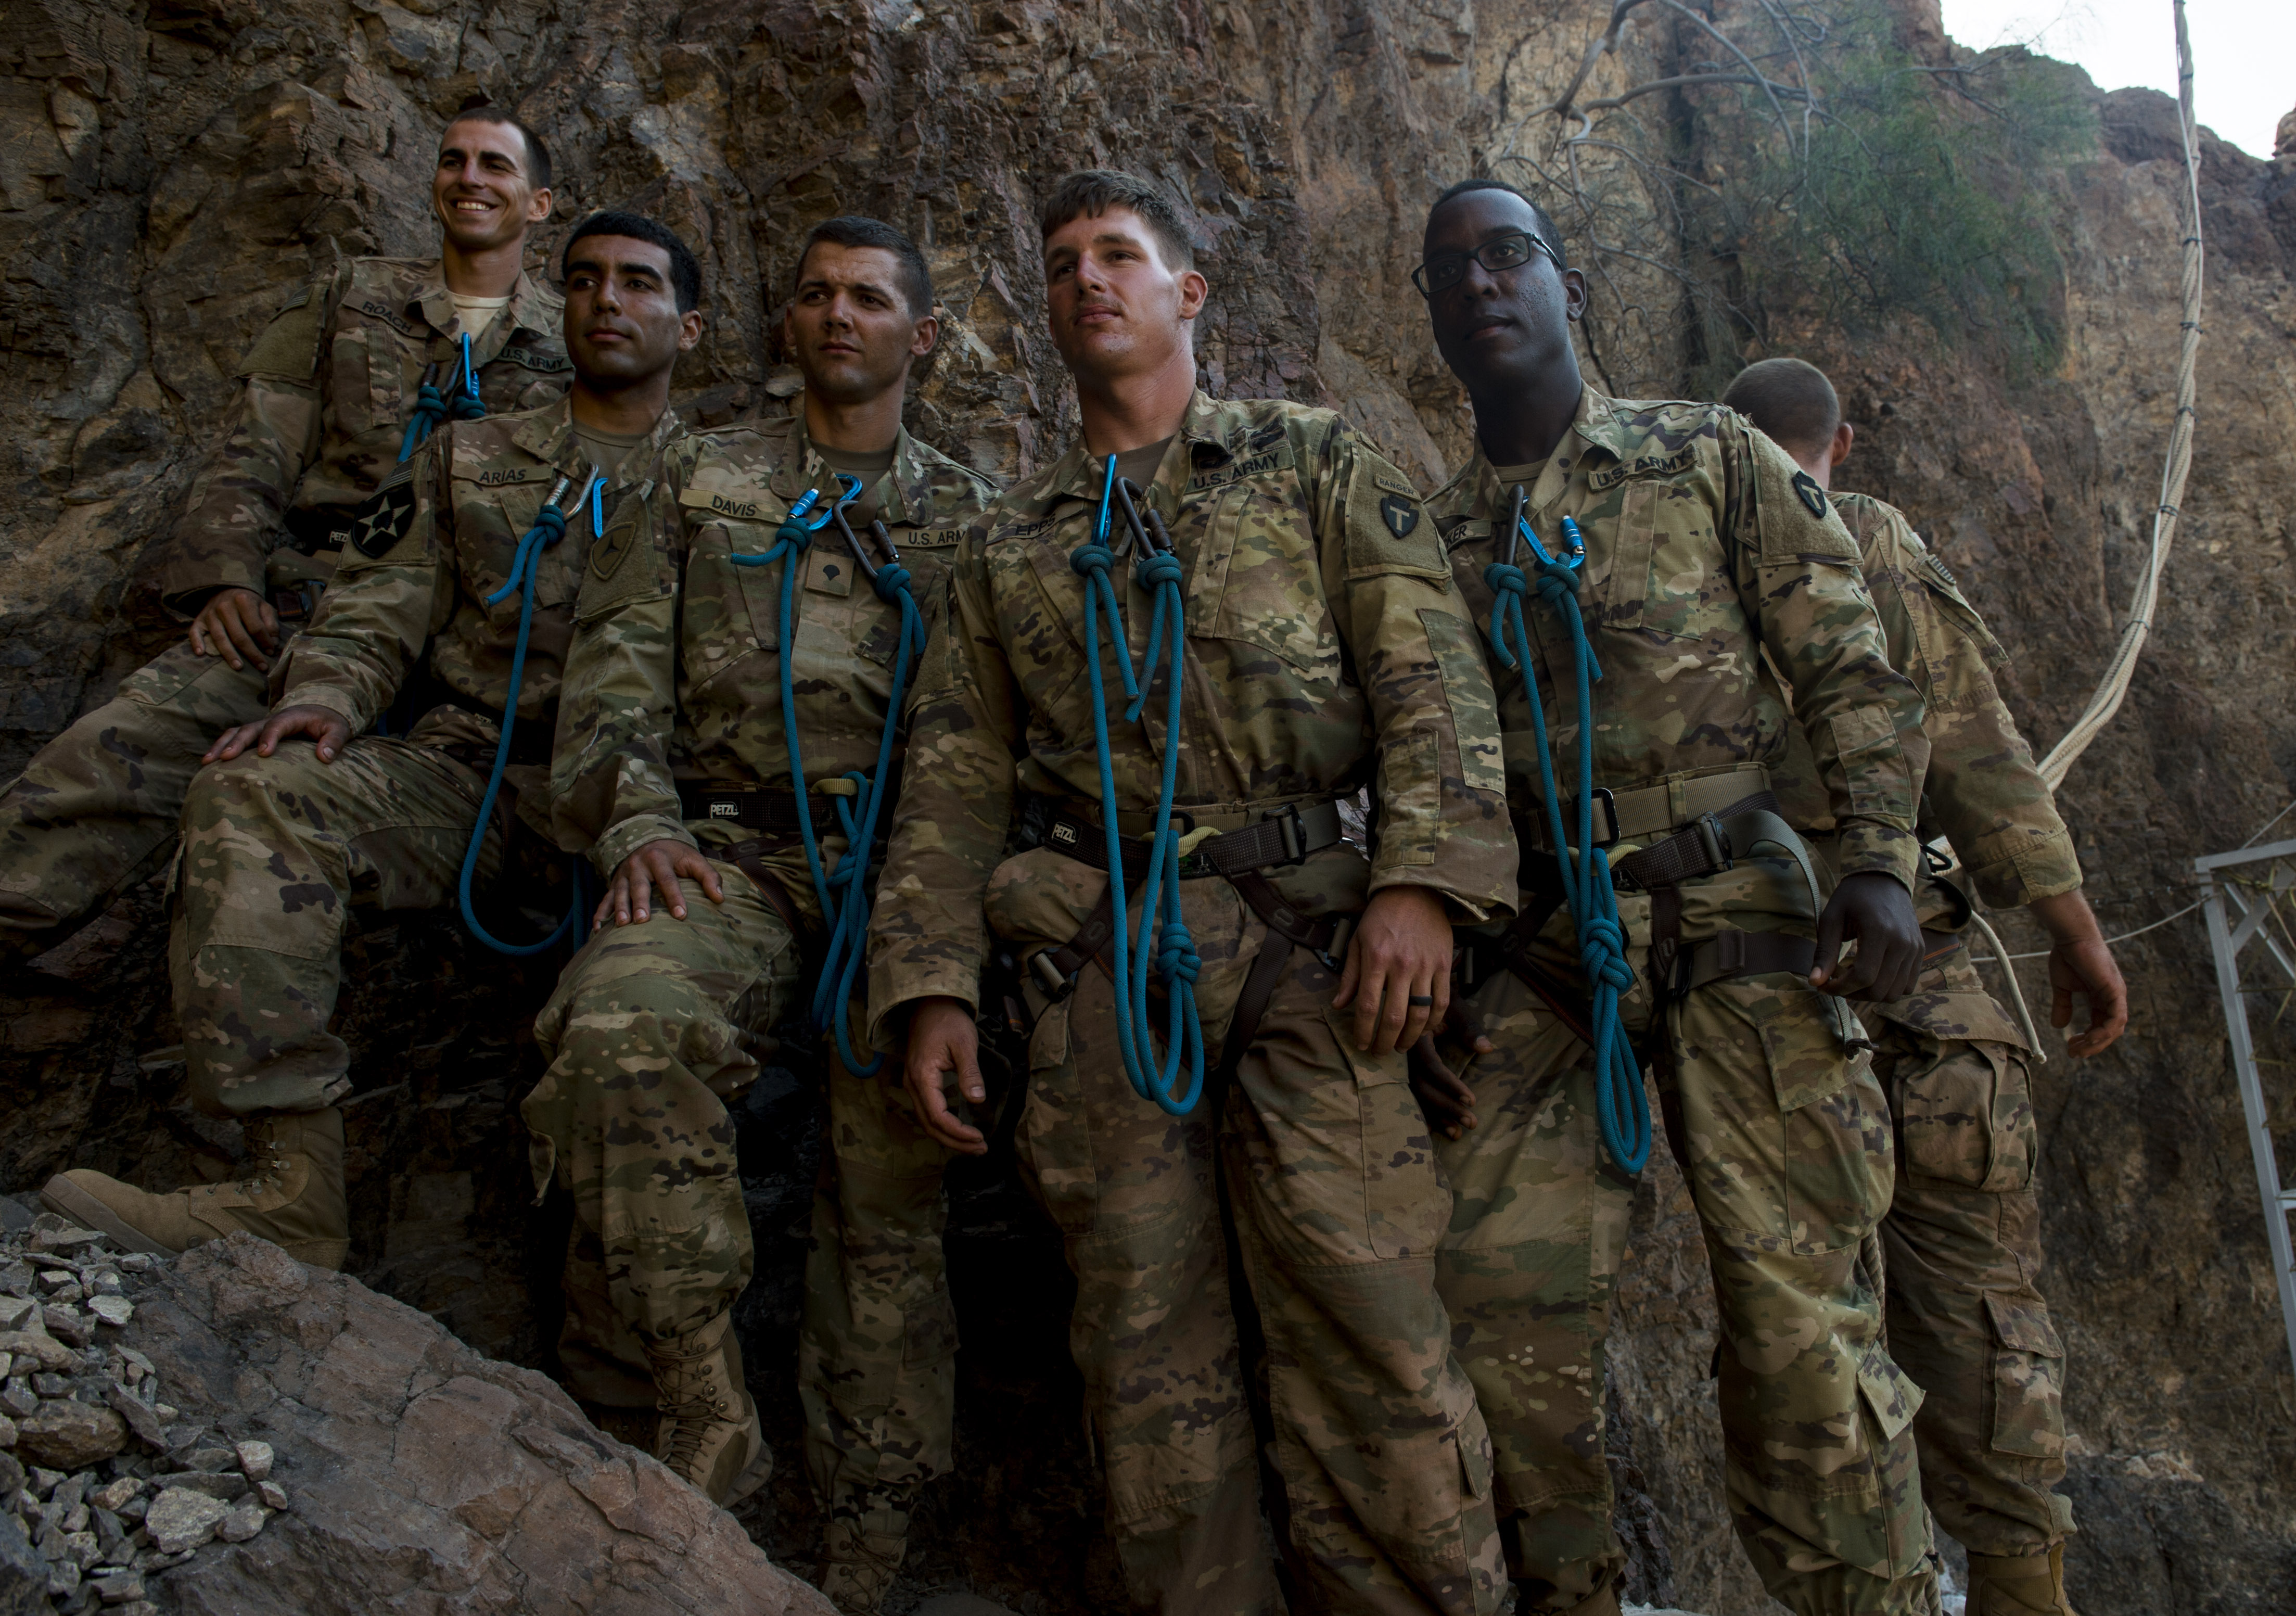 U.S. Army Soldiers assigned to the 3rd Battalion, 144th Infantry Regiment, Task Force Bayonet, attached to the Combined Joint Task Force - Horn of Africa, pose for a photograph at the start of the mountain obstacle portion of the French Desert Commando Course held at Arta, Djibouti, Dec. 3, 2017. Thirty U.S. service members participated in the obstacle course alongside French marines assigned to the 5th Overseas Interarms Regiment, Djibouti. (U.S. Air Force photo by Staff Sgt. Timothy Moore)